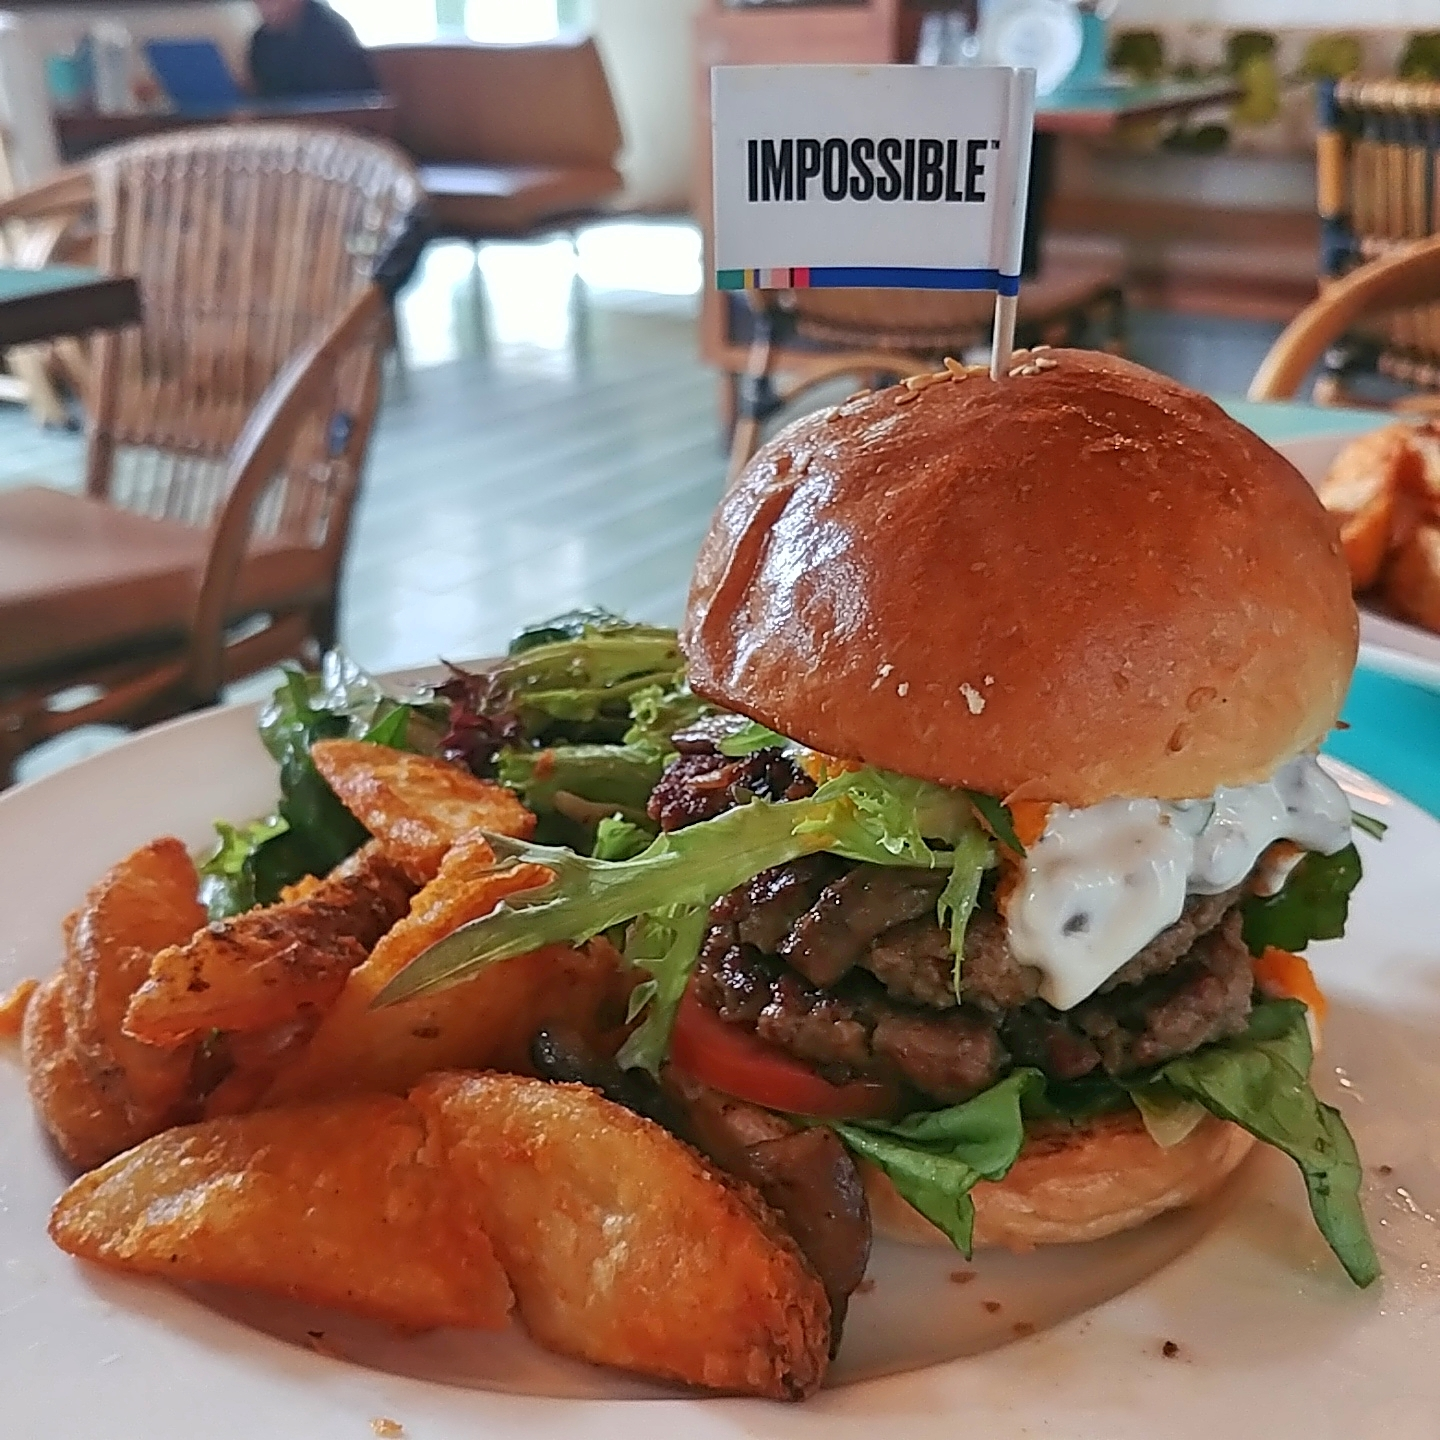 Prive ACM Impossible Burger